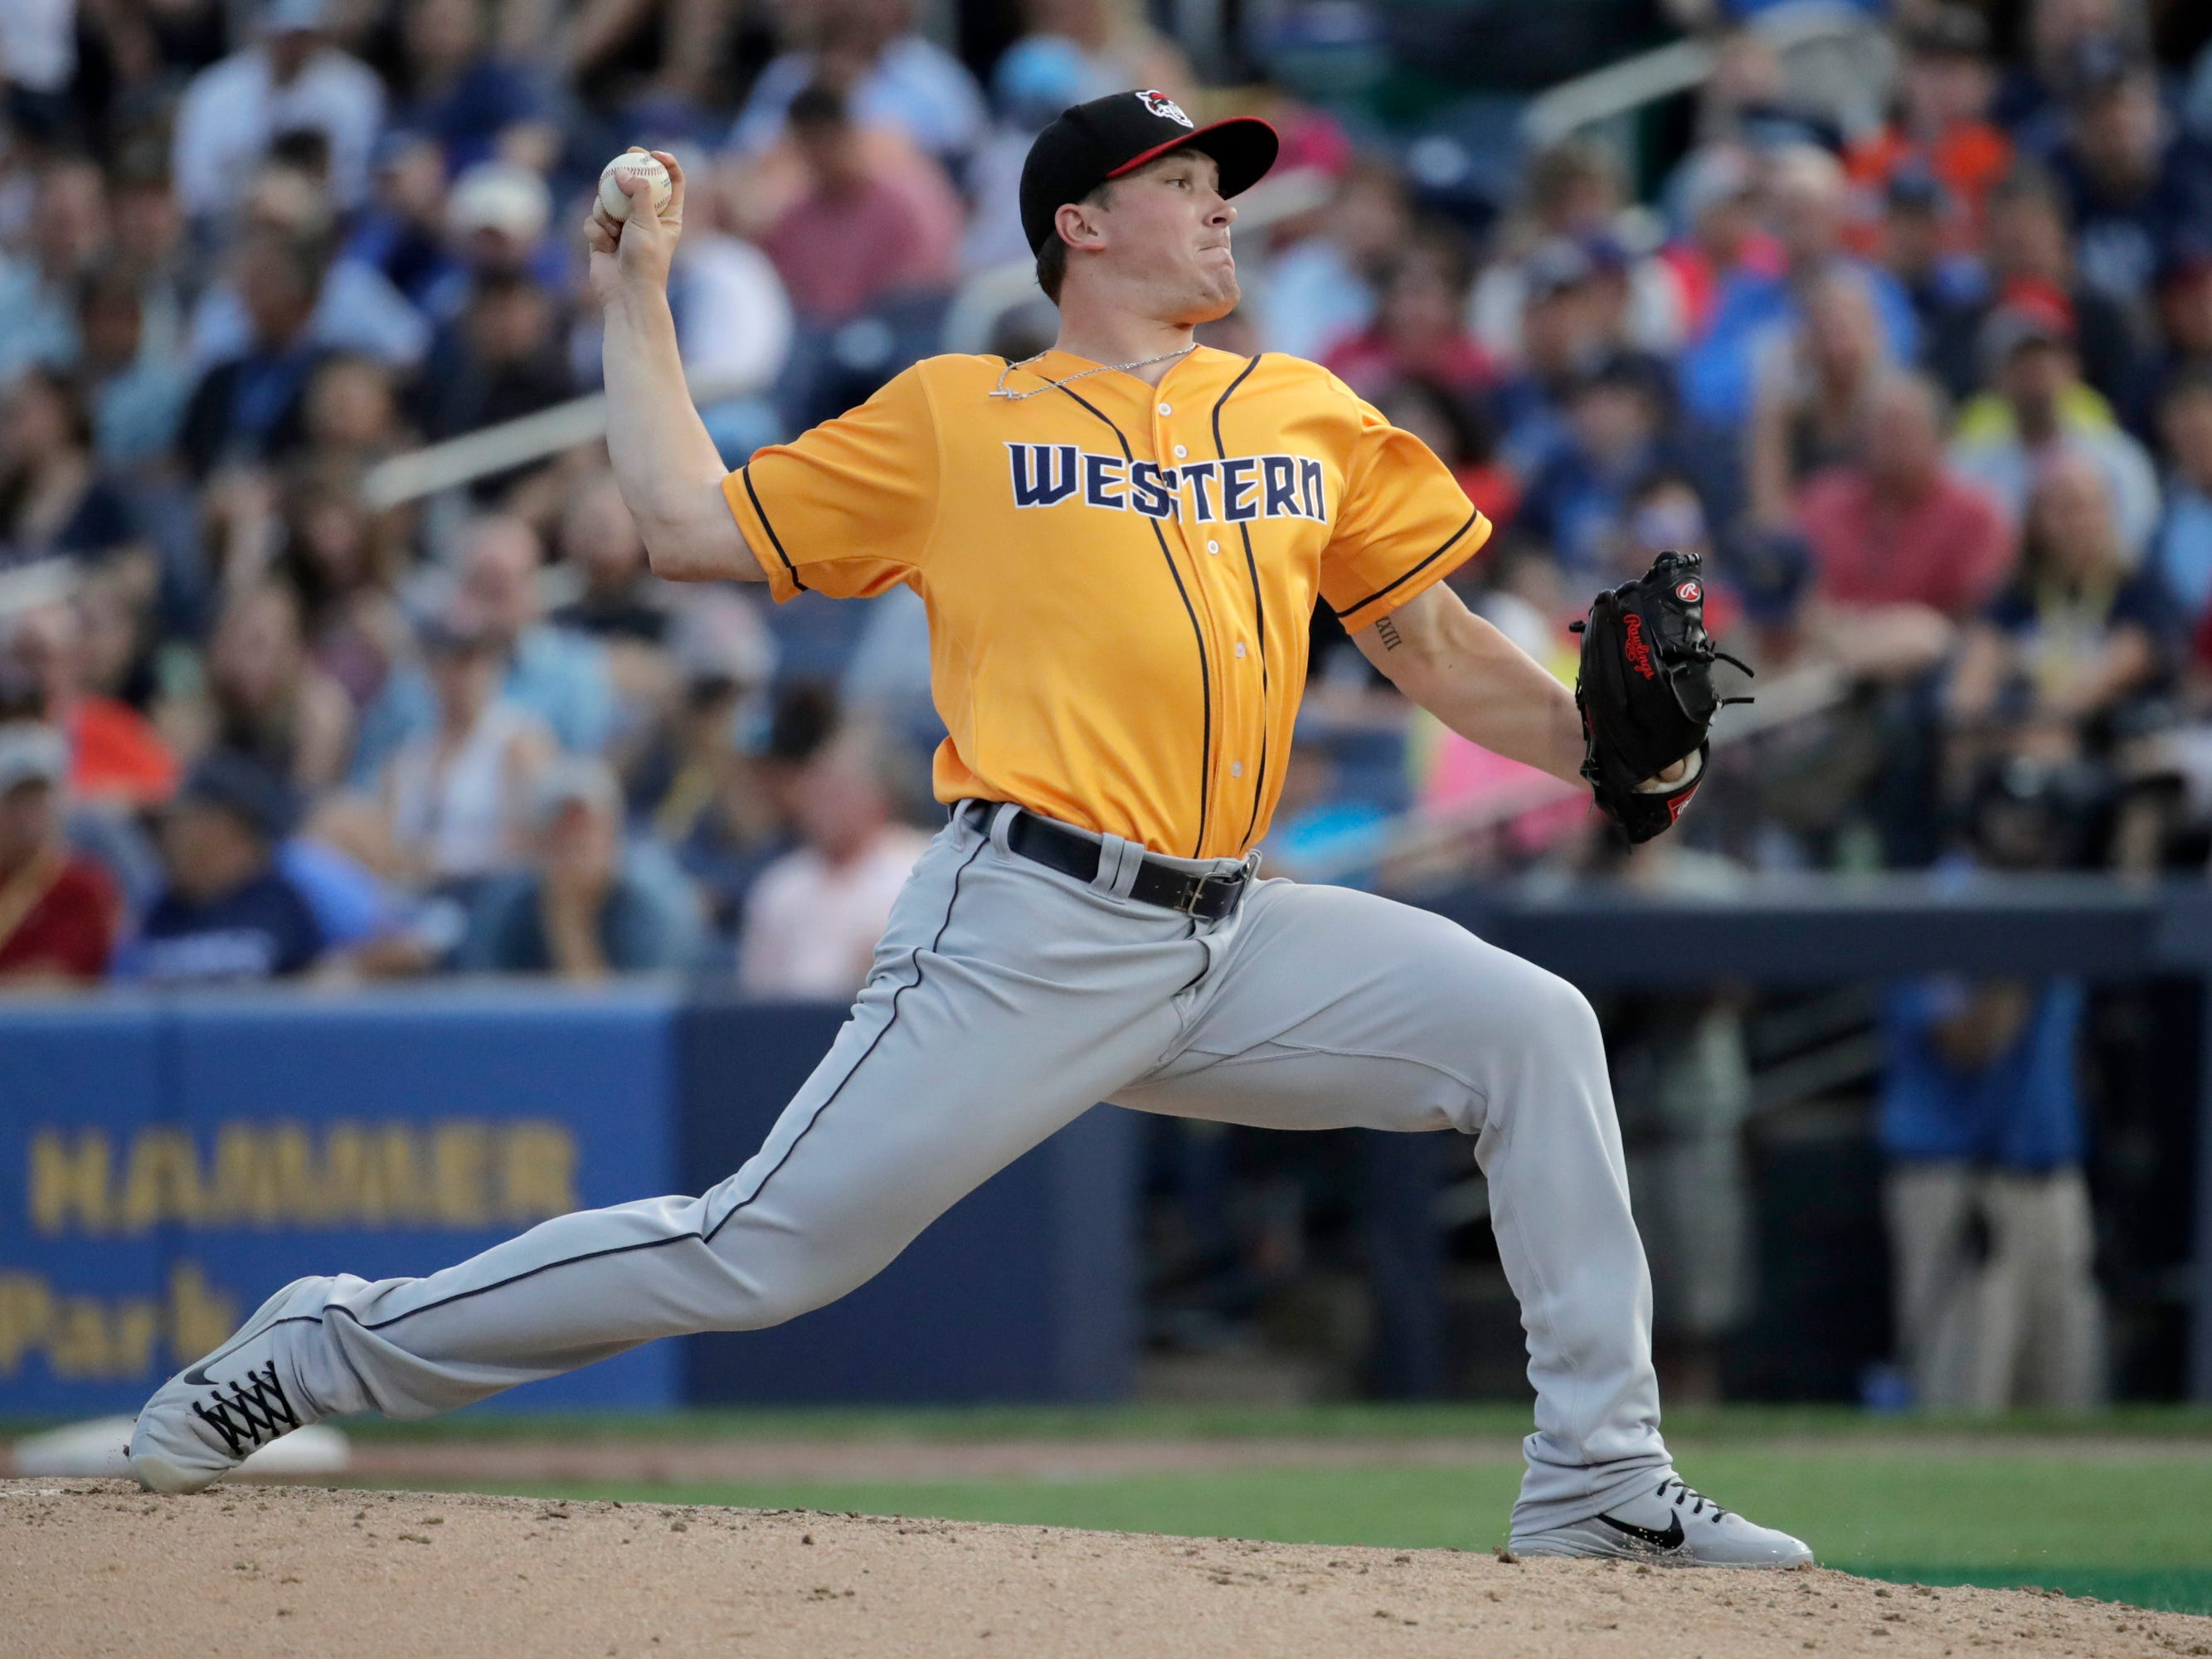 6. Beau Burrows, RH starter, 22, 6-2, 200: This chap has done nothing but pitch well, stay healthy, and improve at every level since the Tigers got him as one more perilous prep starter who looks as if he'll do just fine. Yes, stuff happens. It can happen to any player. Burrows will start the year at Triple A. A good bet you'll see him in Detroit in 2019, perhaps earlier than later.